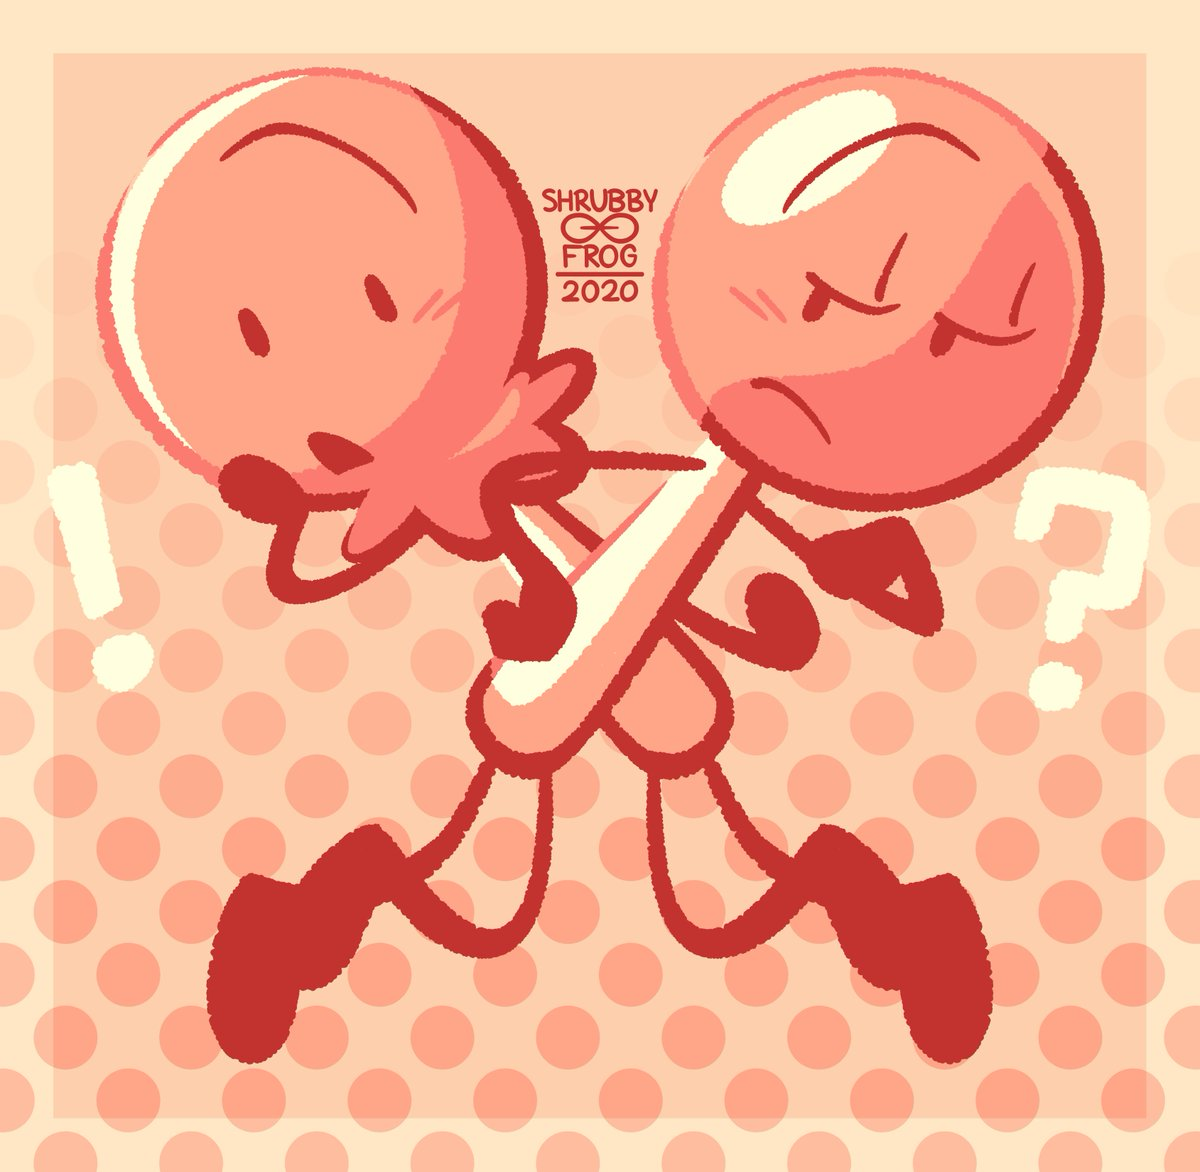 been thinking about bfdia lollipop :] #bfdi #bfb #tpot #artistsontwitter pic.twitter.com/8DfVFqMkJC